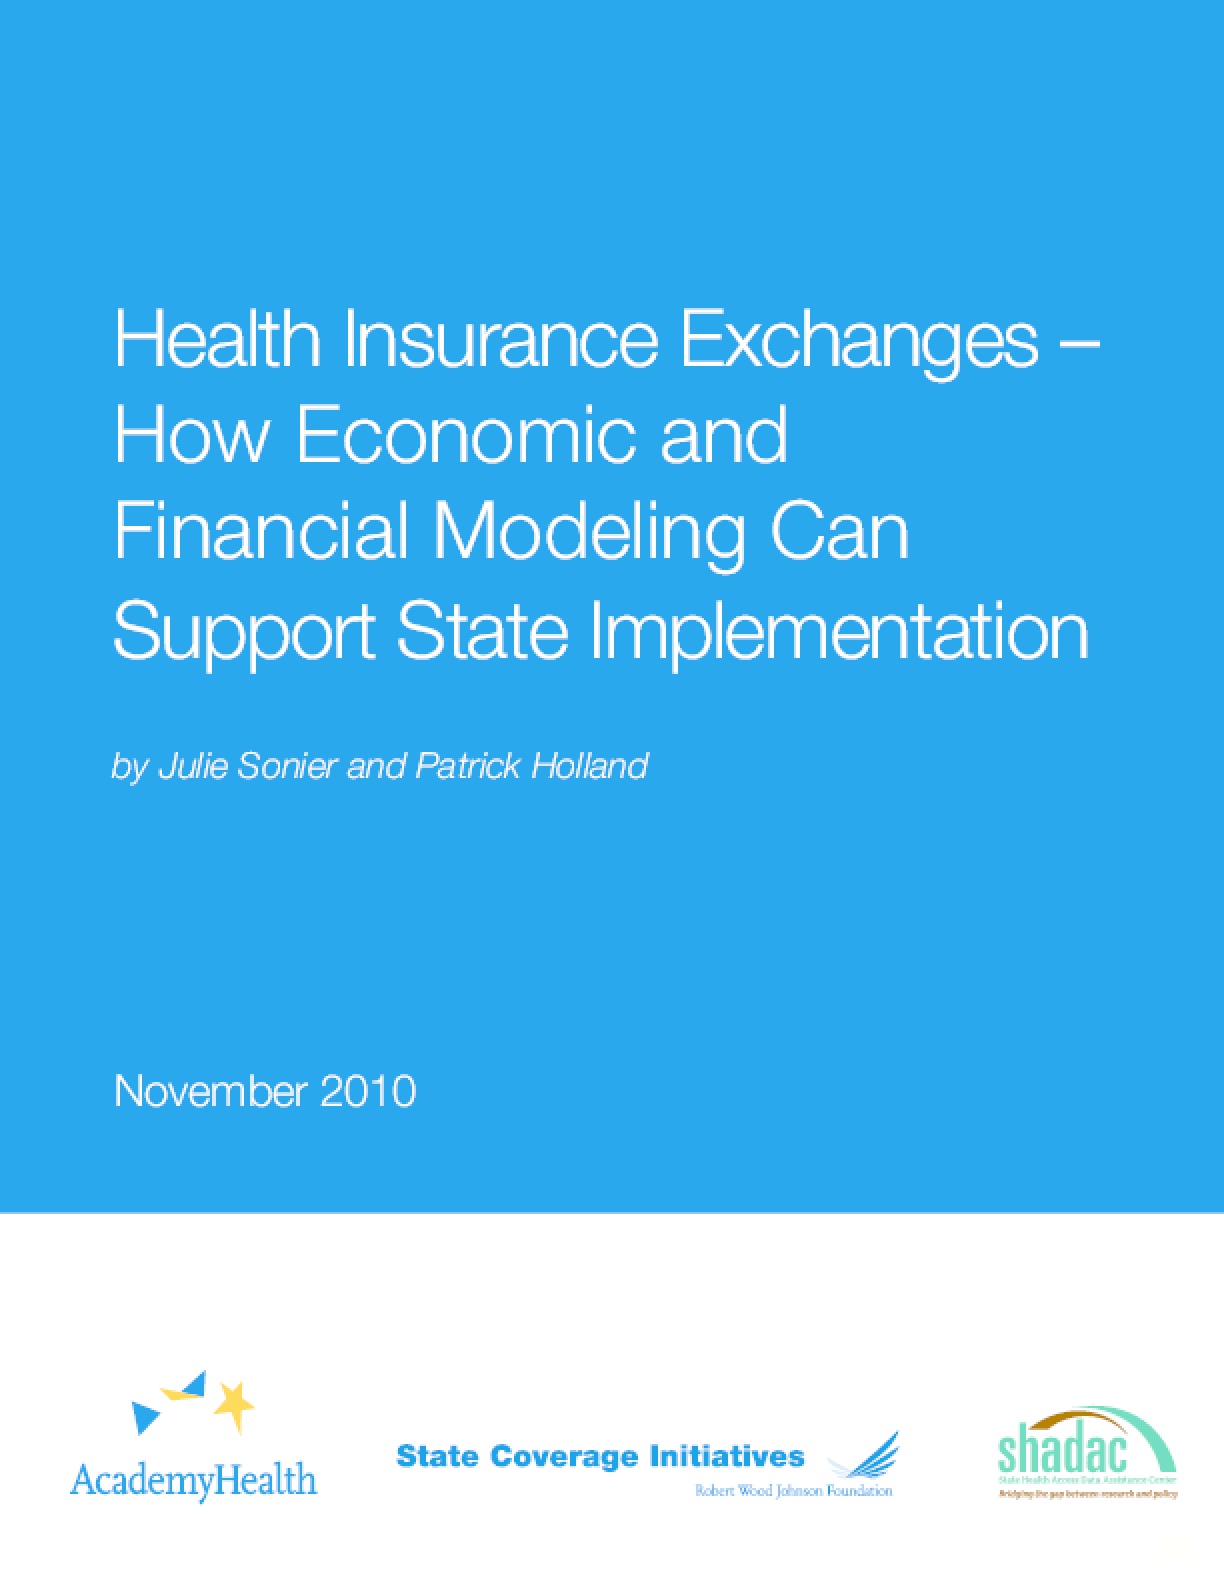 Health Insurance Exchanges: How Economic and Financial Modeling Can Support State Implementation